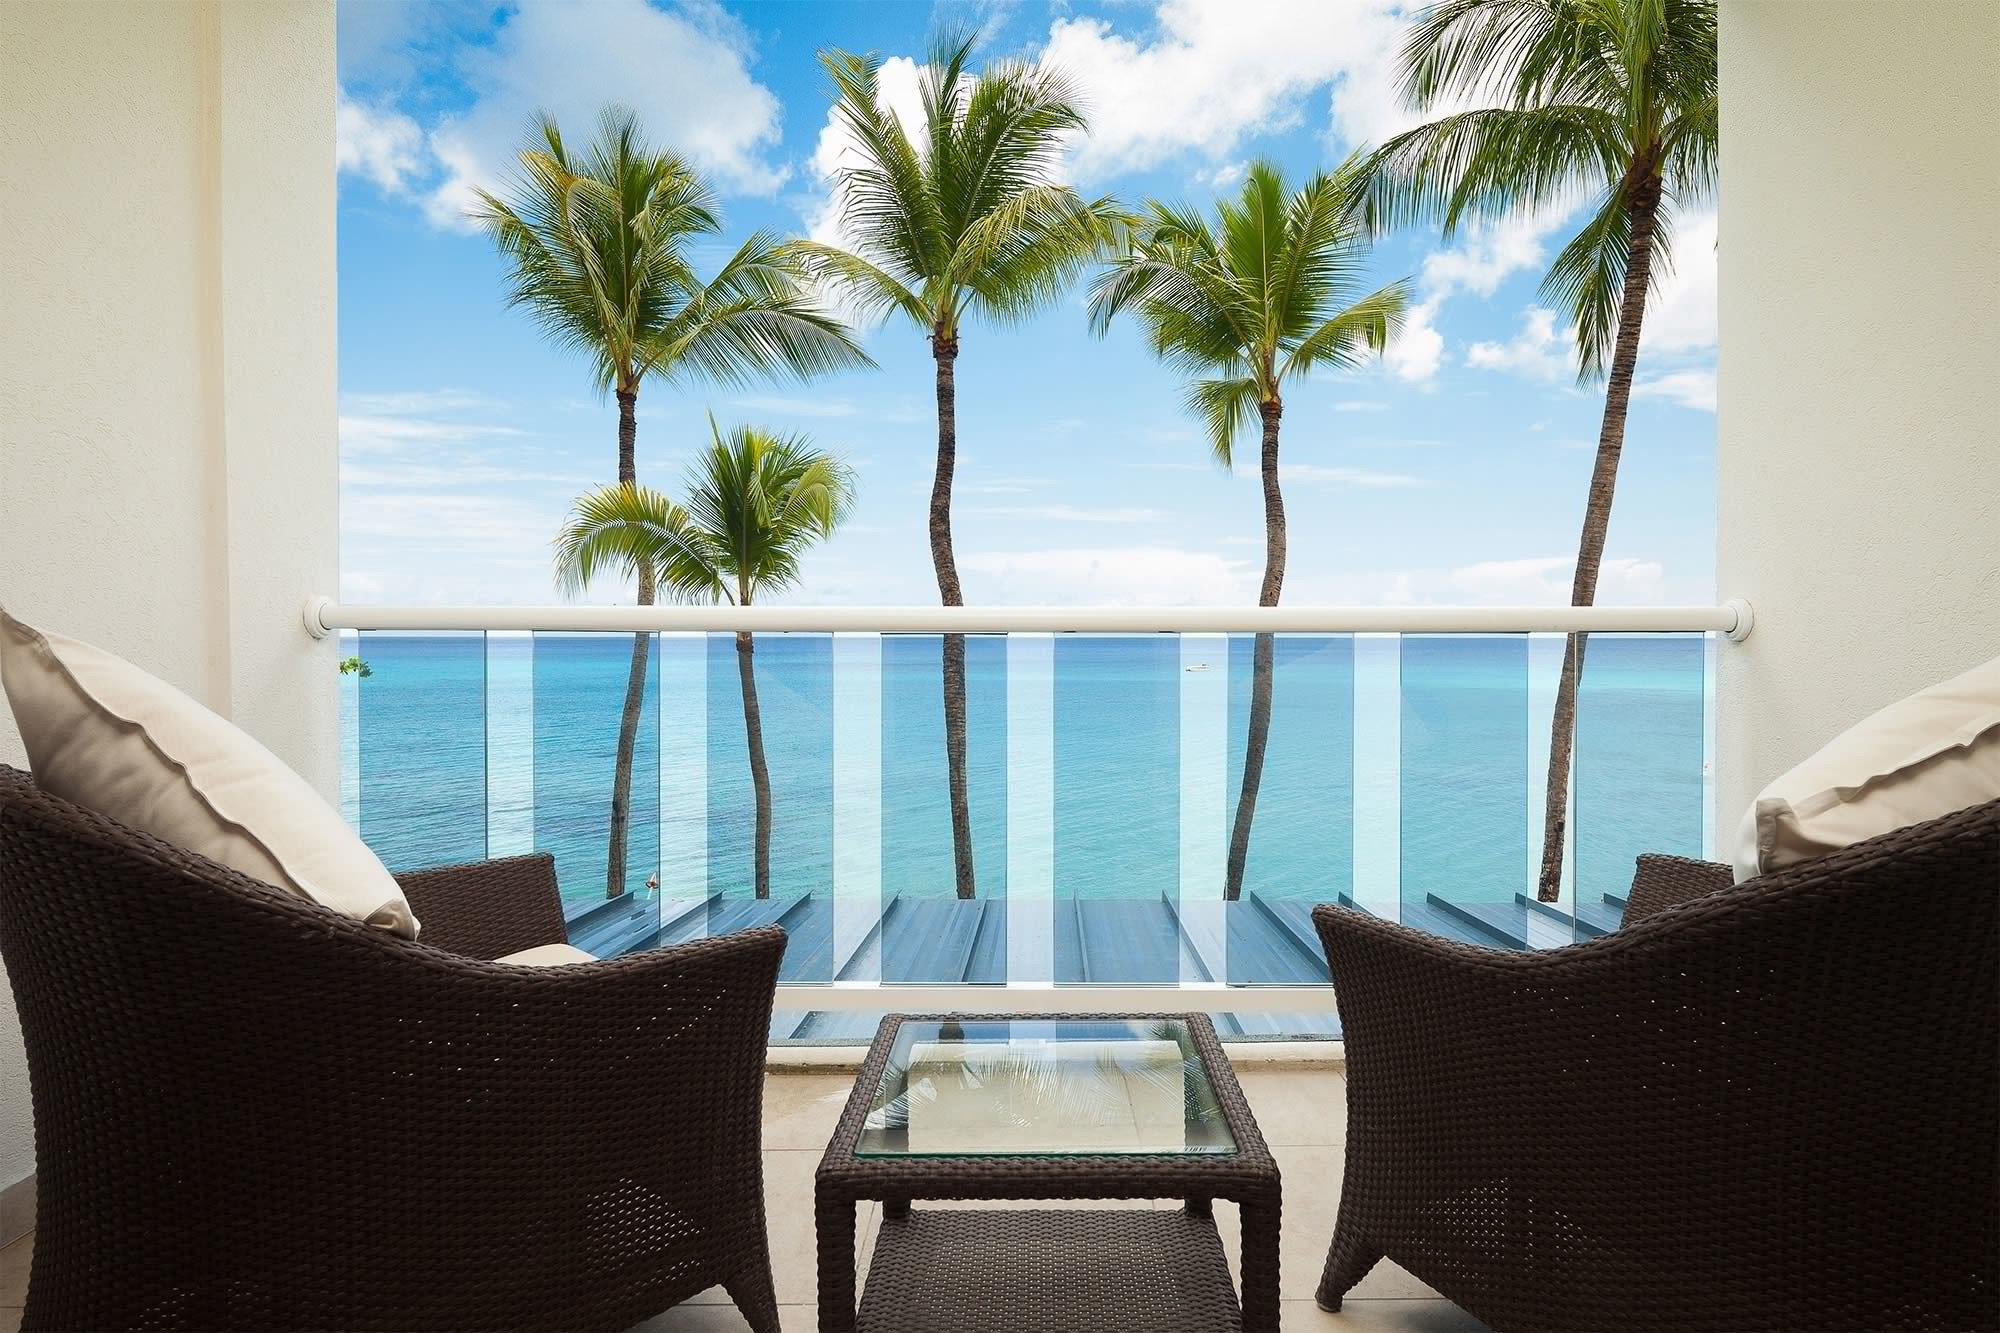 All-Inclusive Resorts Hotels water Resort property vacation palm tree swimming pool arecales real estate estate table condominium home caribbean hotel outdoor furniture Sea tropics Balcony Ocean leisure window apartment Villa penthouse apartment overlooking furniture